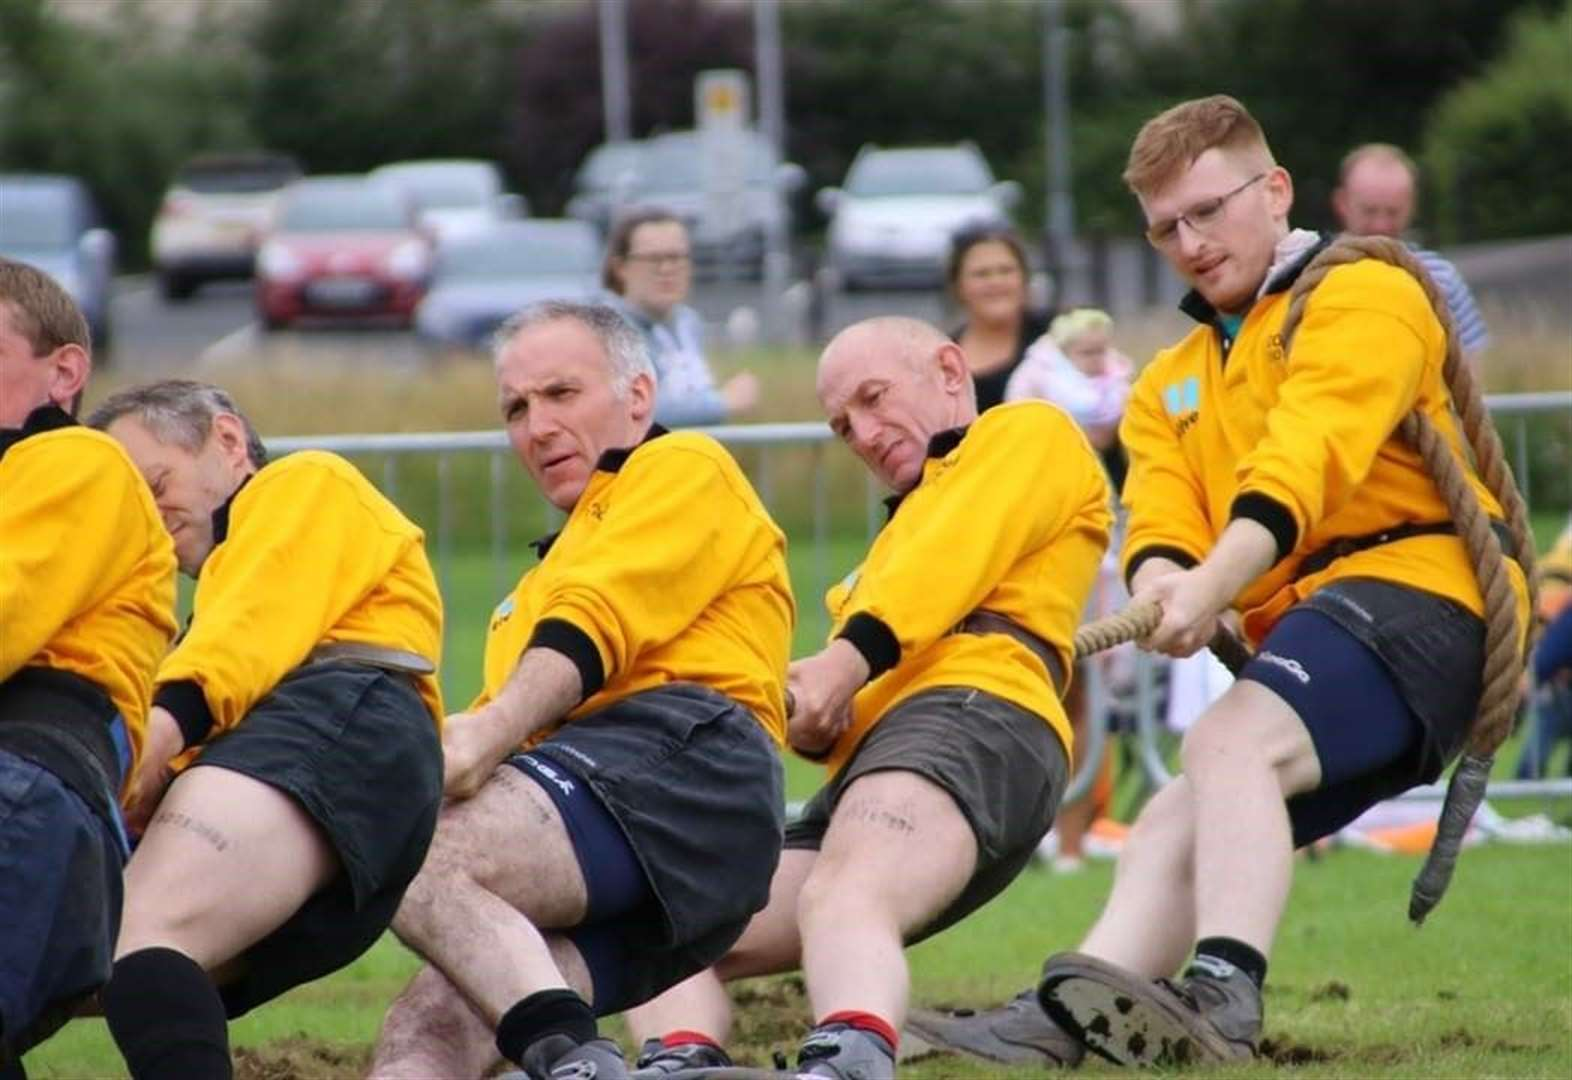 Tug of war team continues to pull in support